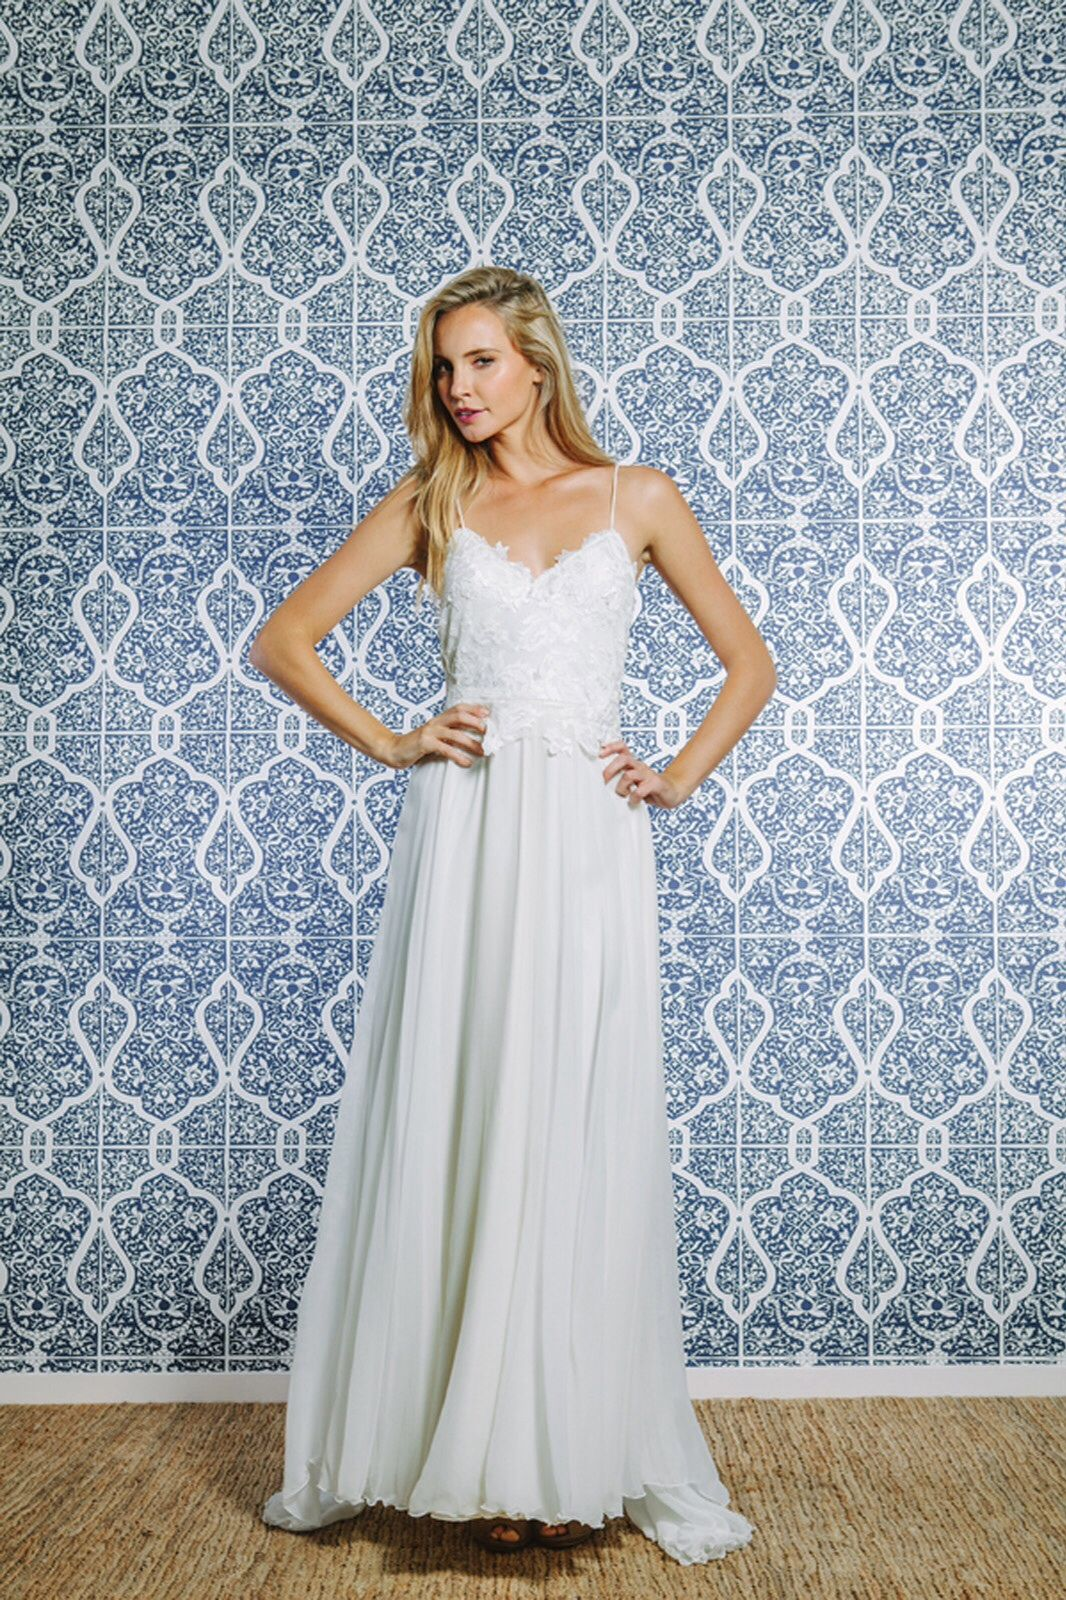 Bohemian Hochzeitskleid Grace Loves Lace Tara Dress This Has To Be The One For